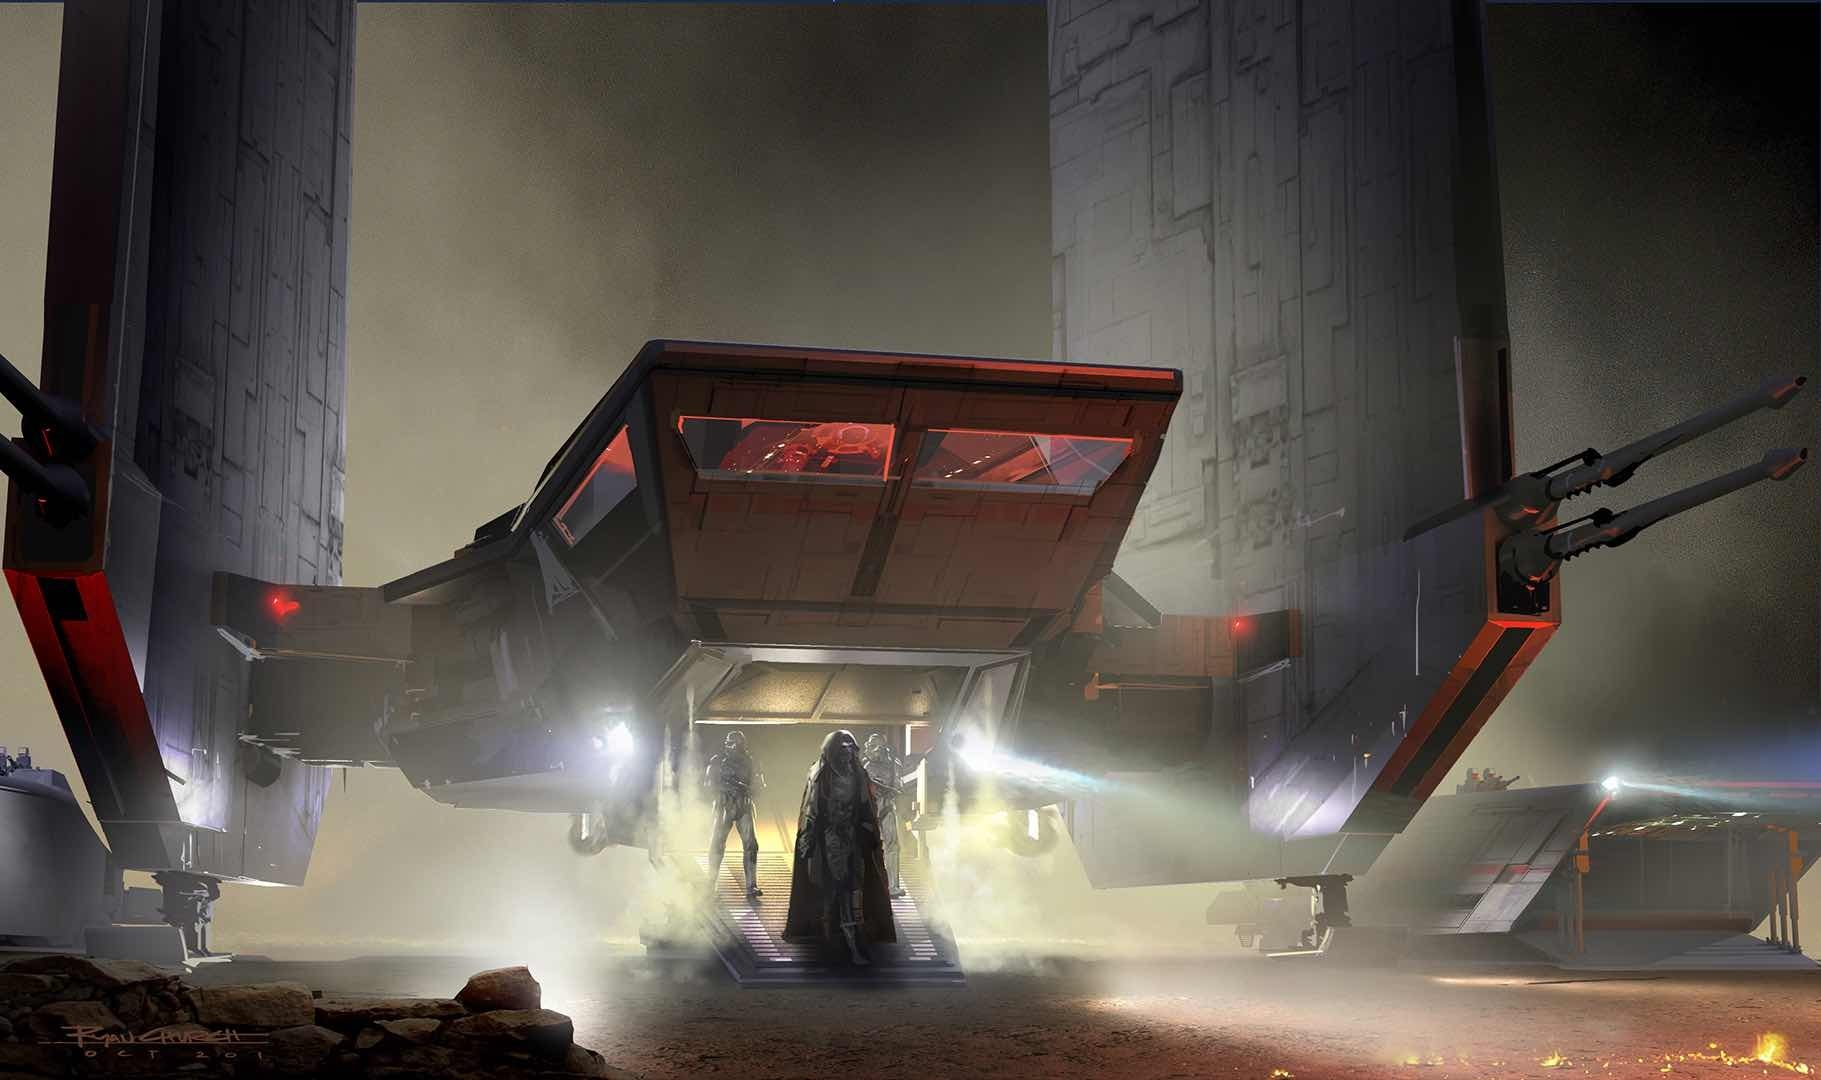 Star Wars VII The Force Awakens: 45 New Exclusive Concept Art